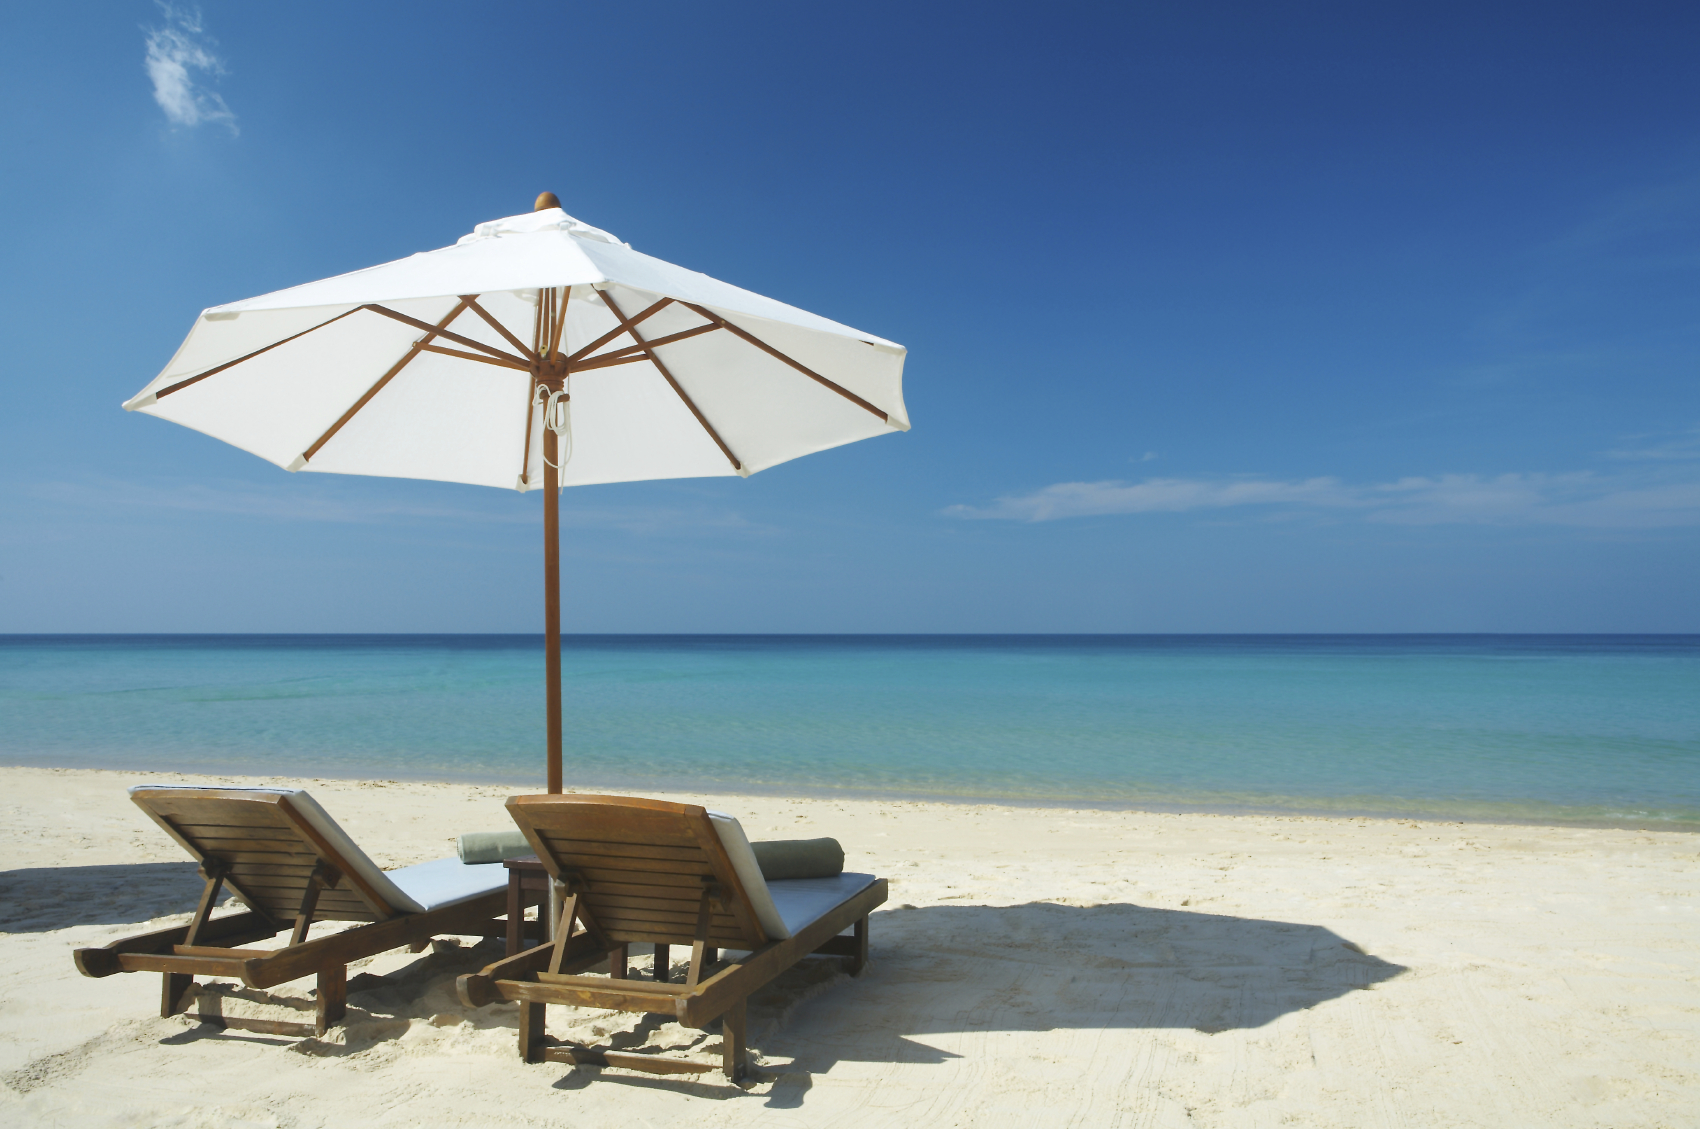 How To Protect Your Home While On Holiday